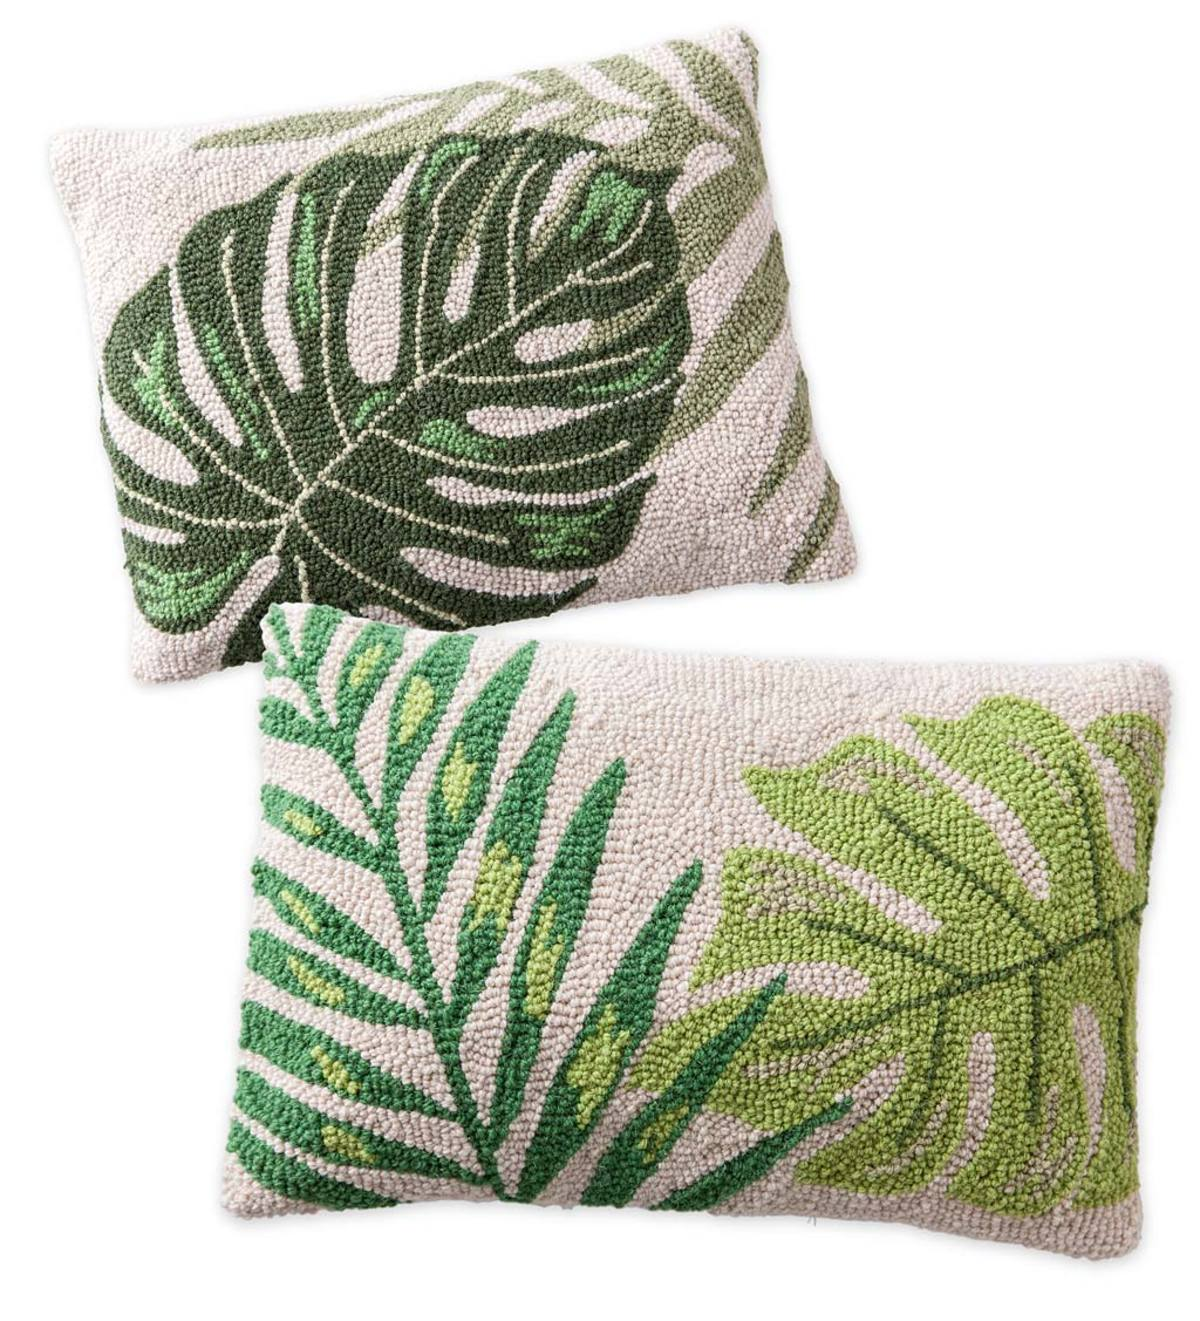 Hand Hooked Wool Pillows